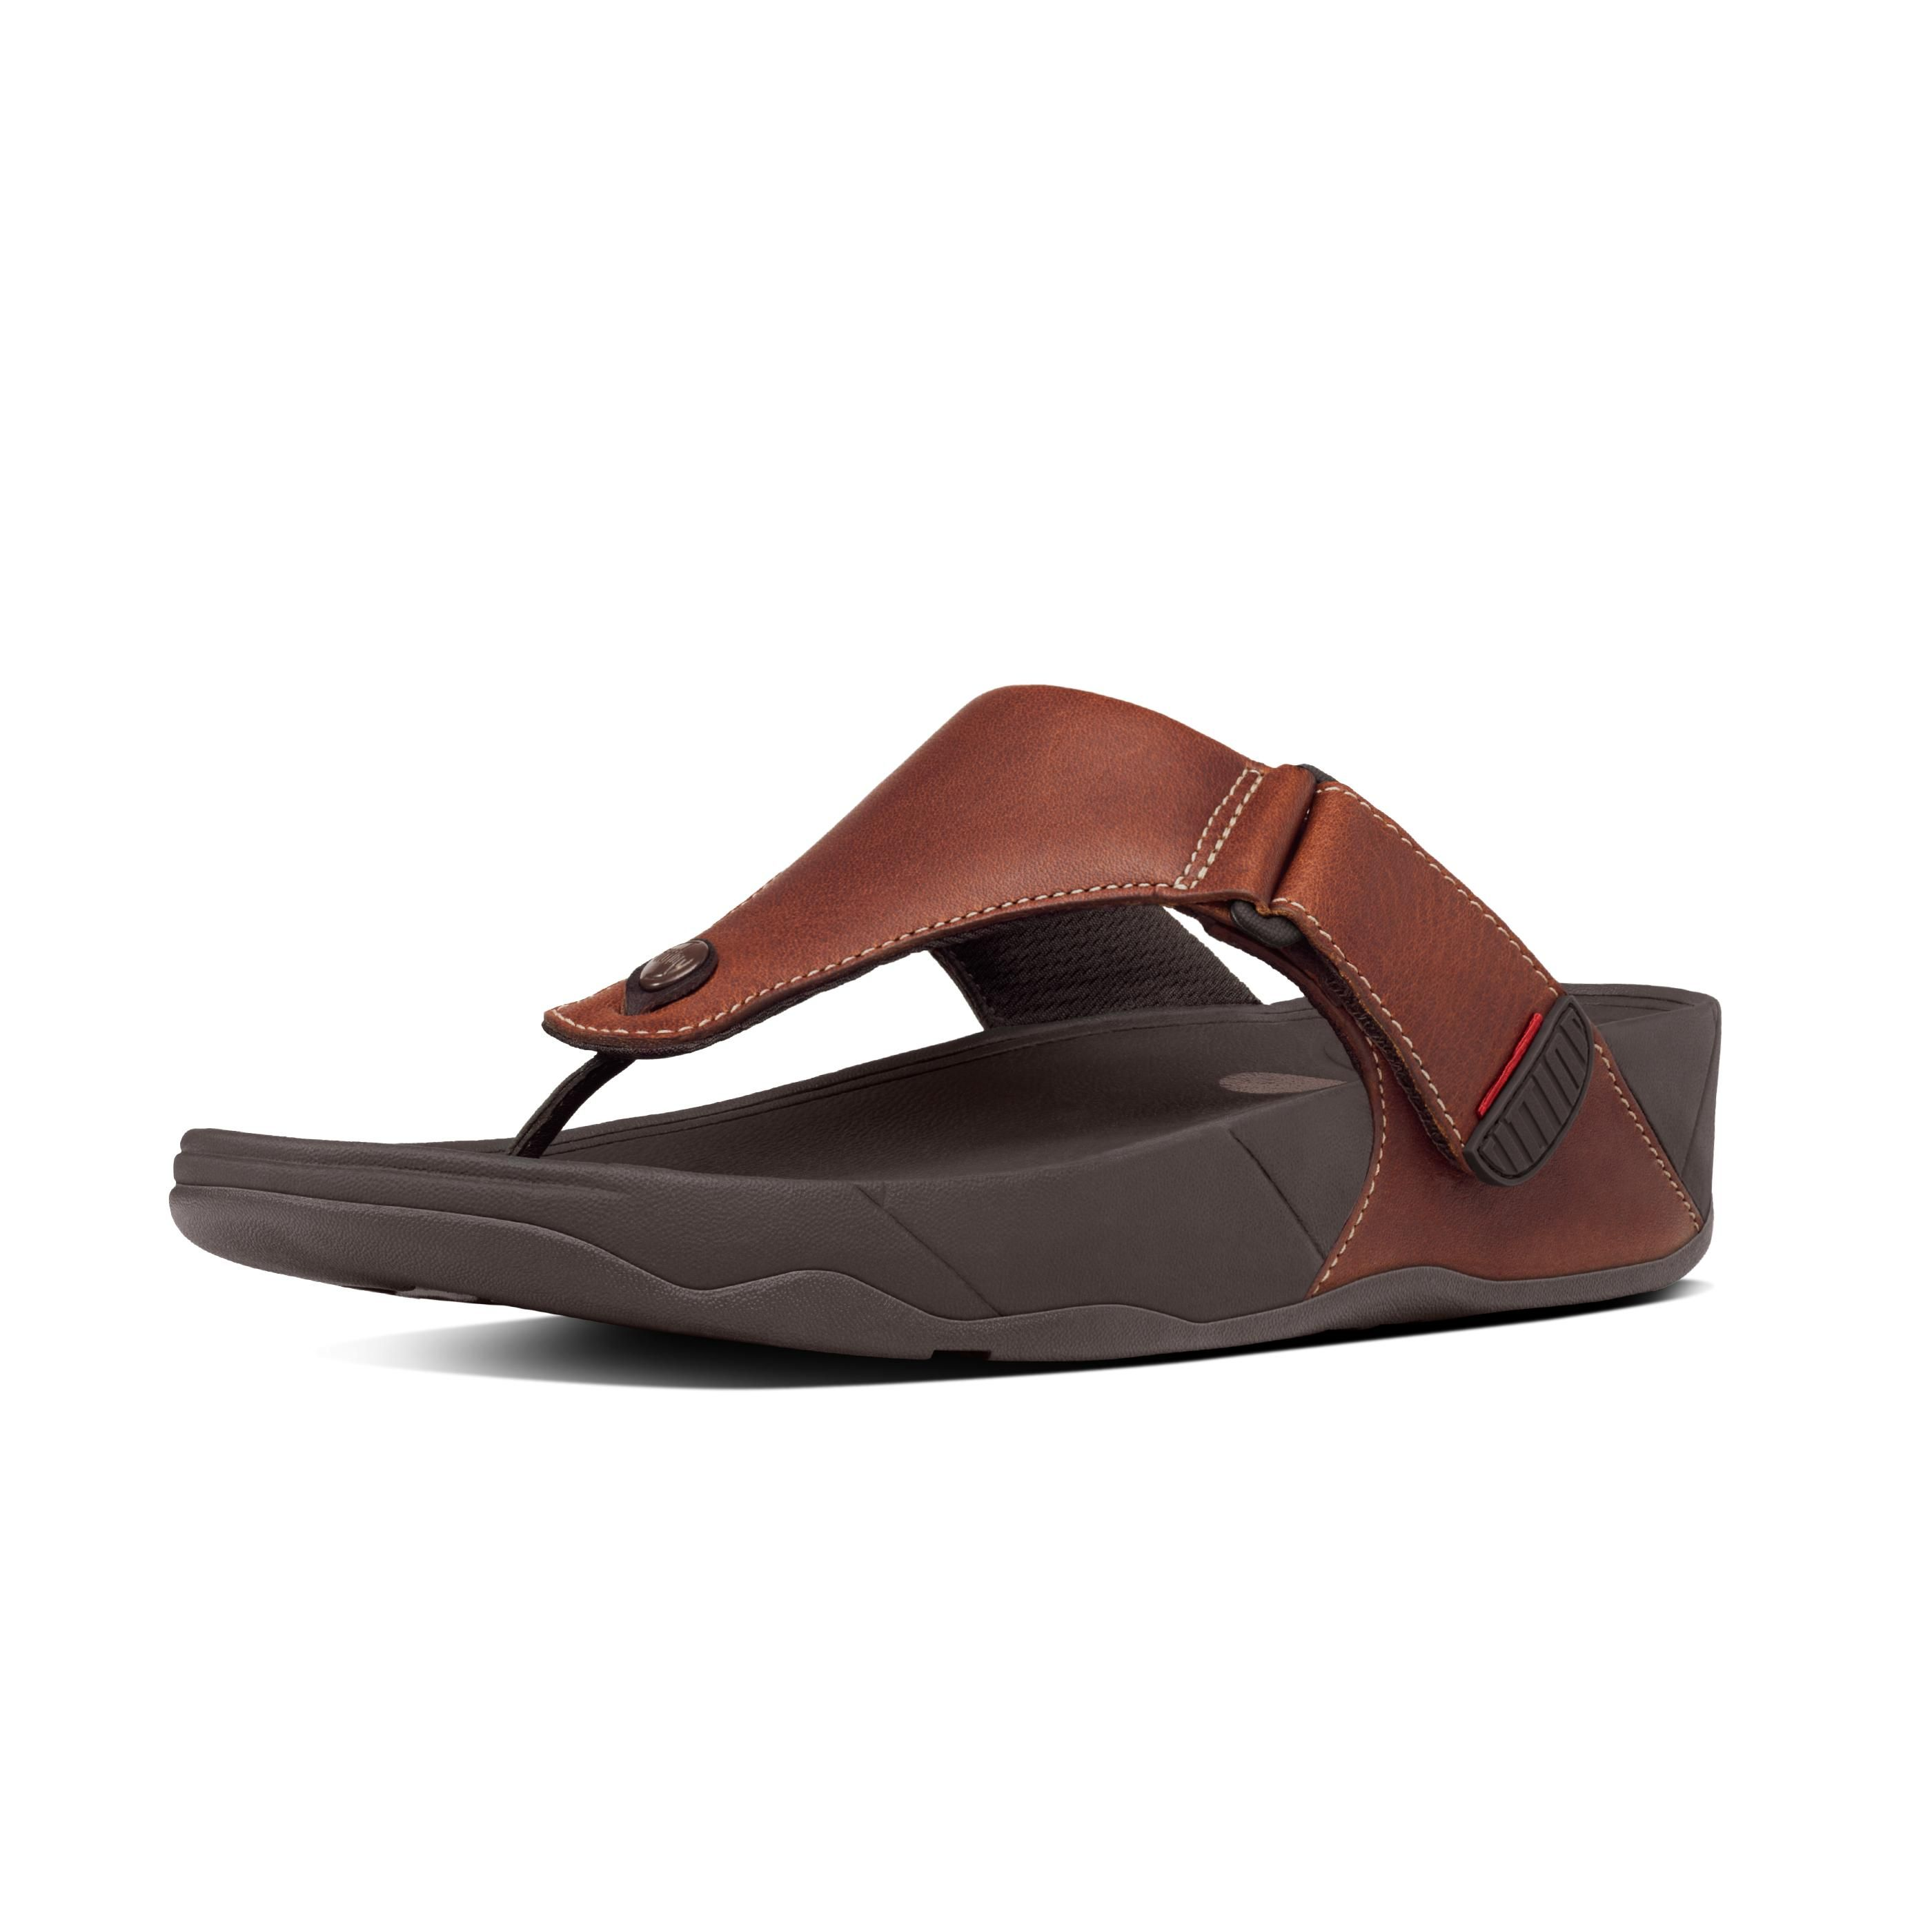 eb65c07ab3a866 FitFlop Trakk II Leather Flip Flops Dark Tan